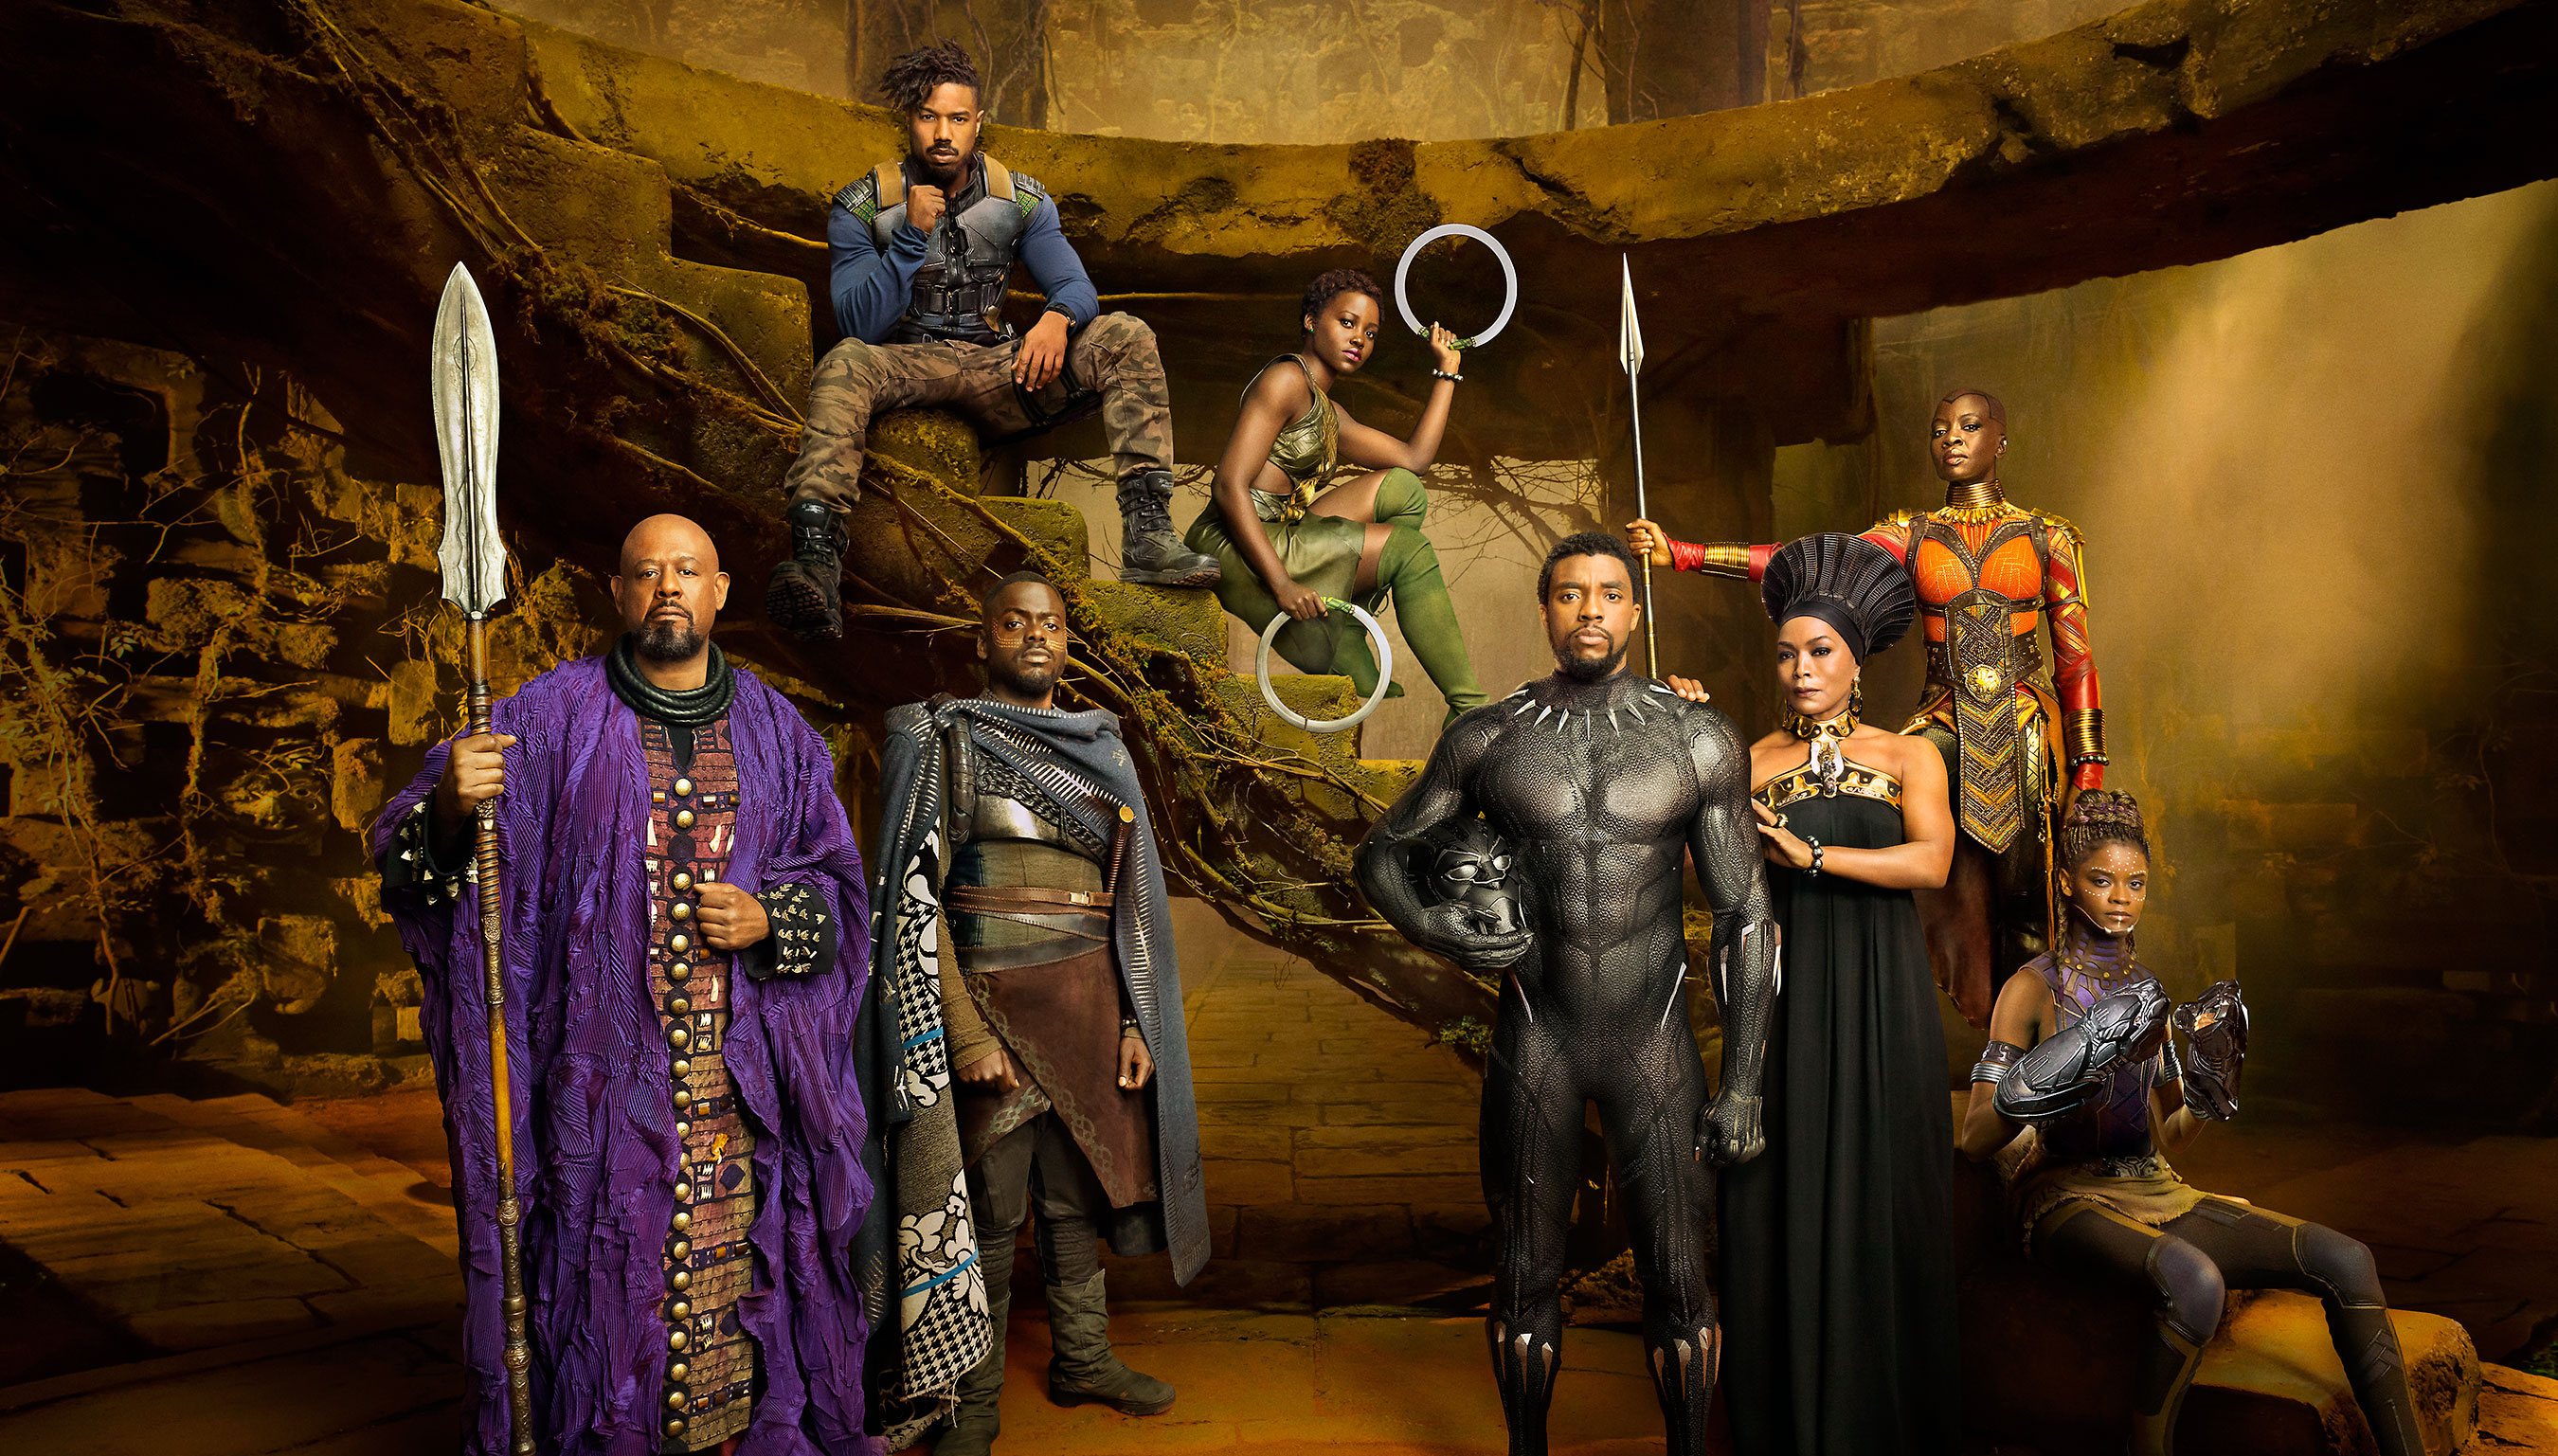 1280x1024 Black Panther Movie Cast 1280x1024 Resolution Hd 4k Wallpapers Images Backgrounds Photos And Pictures